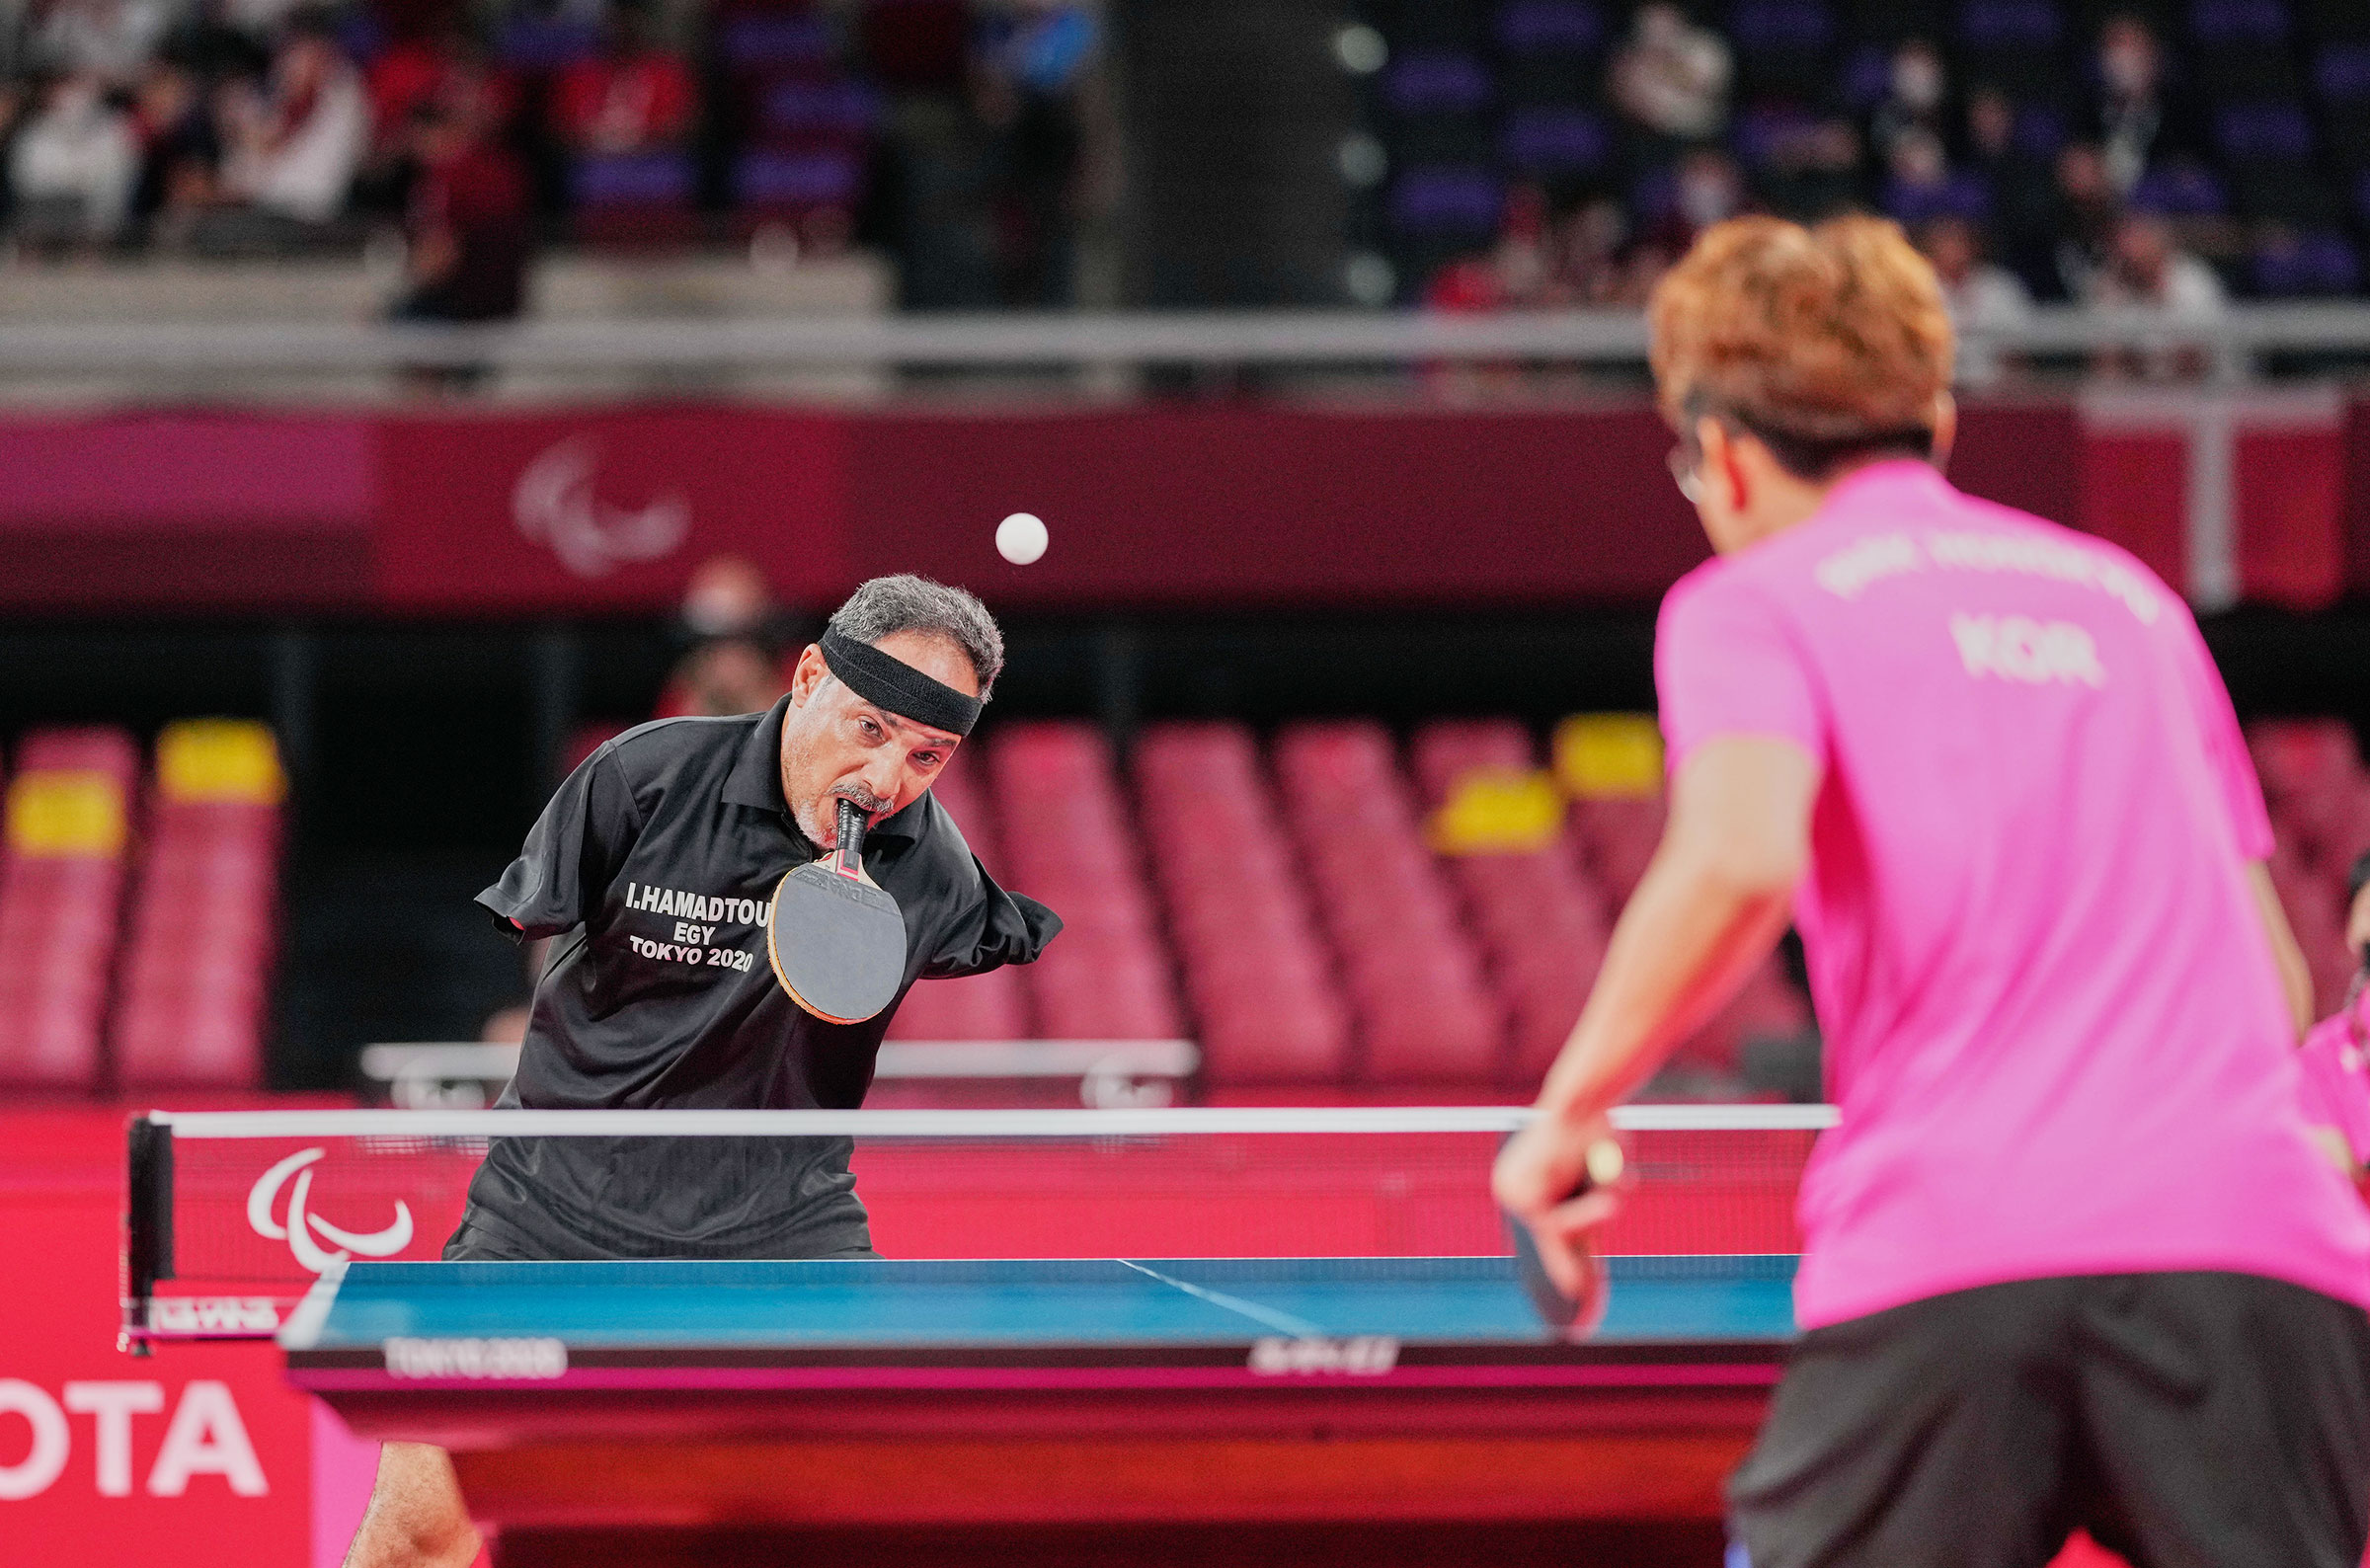 Ibrahim Elhusseiny Hamadtou during table tennis event at the Tokyo Paralympics in Japan on August 25, 2021.